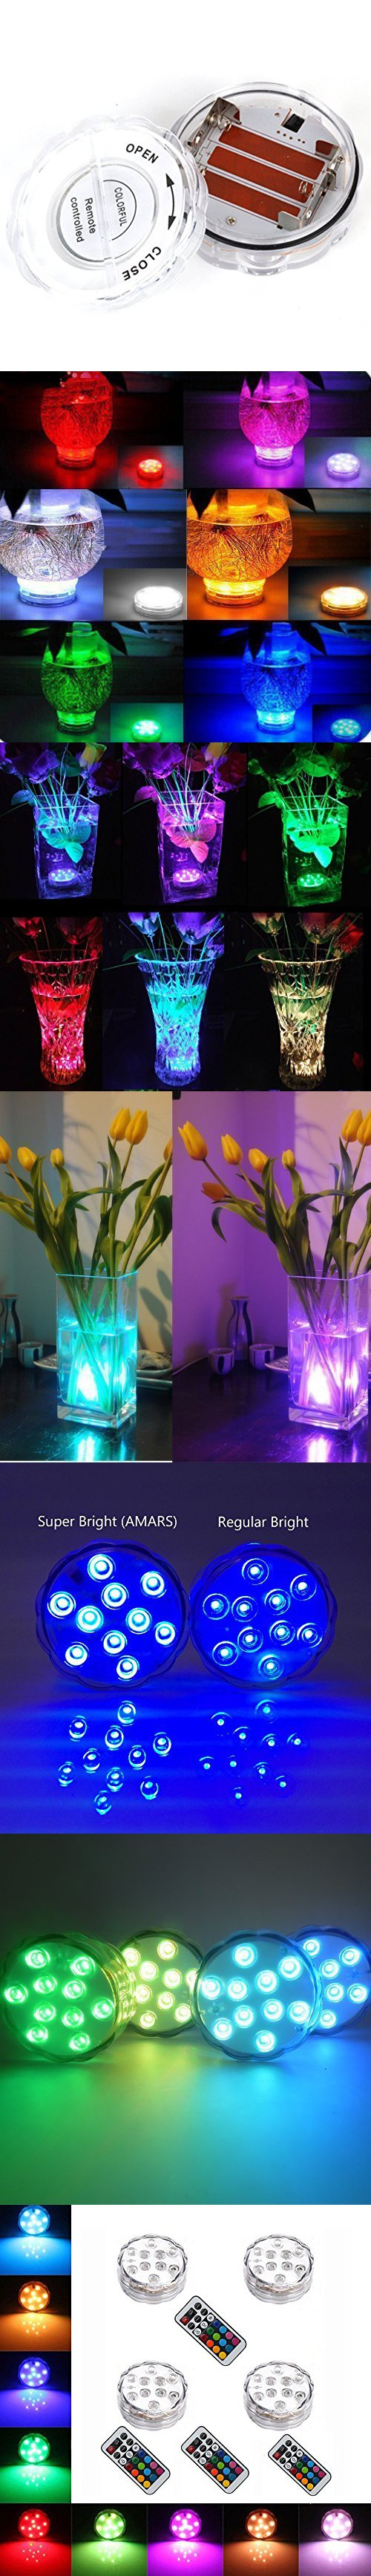 4PCS Remote Controlled RGB Submersible LED Lights AAA Battery Operated LED Decorative Lights for Lighting Up Vase, Bowl, Fish Tank, Wedding, Centerpiece, Halloween, Party Lights (4pcs LED)